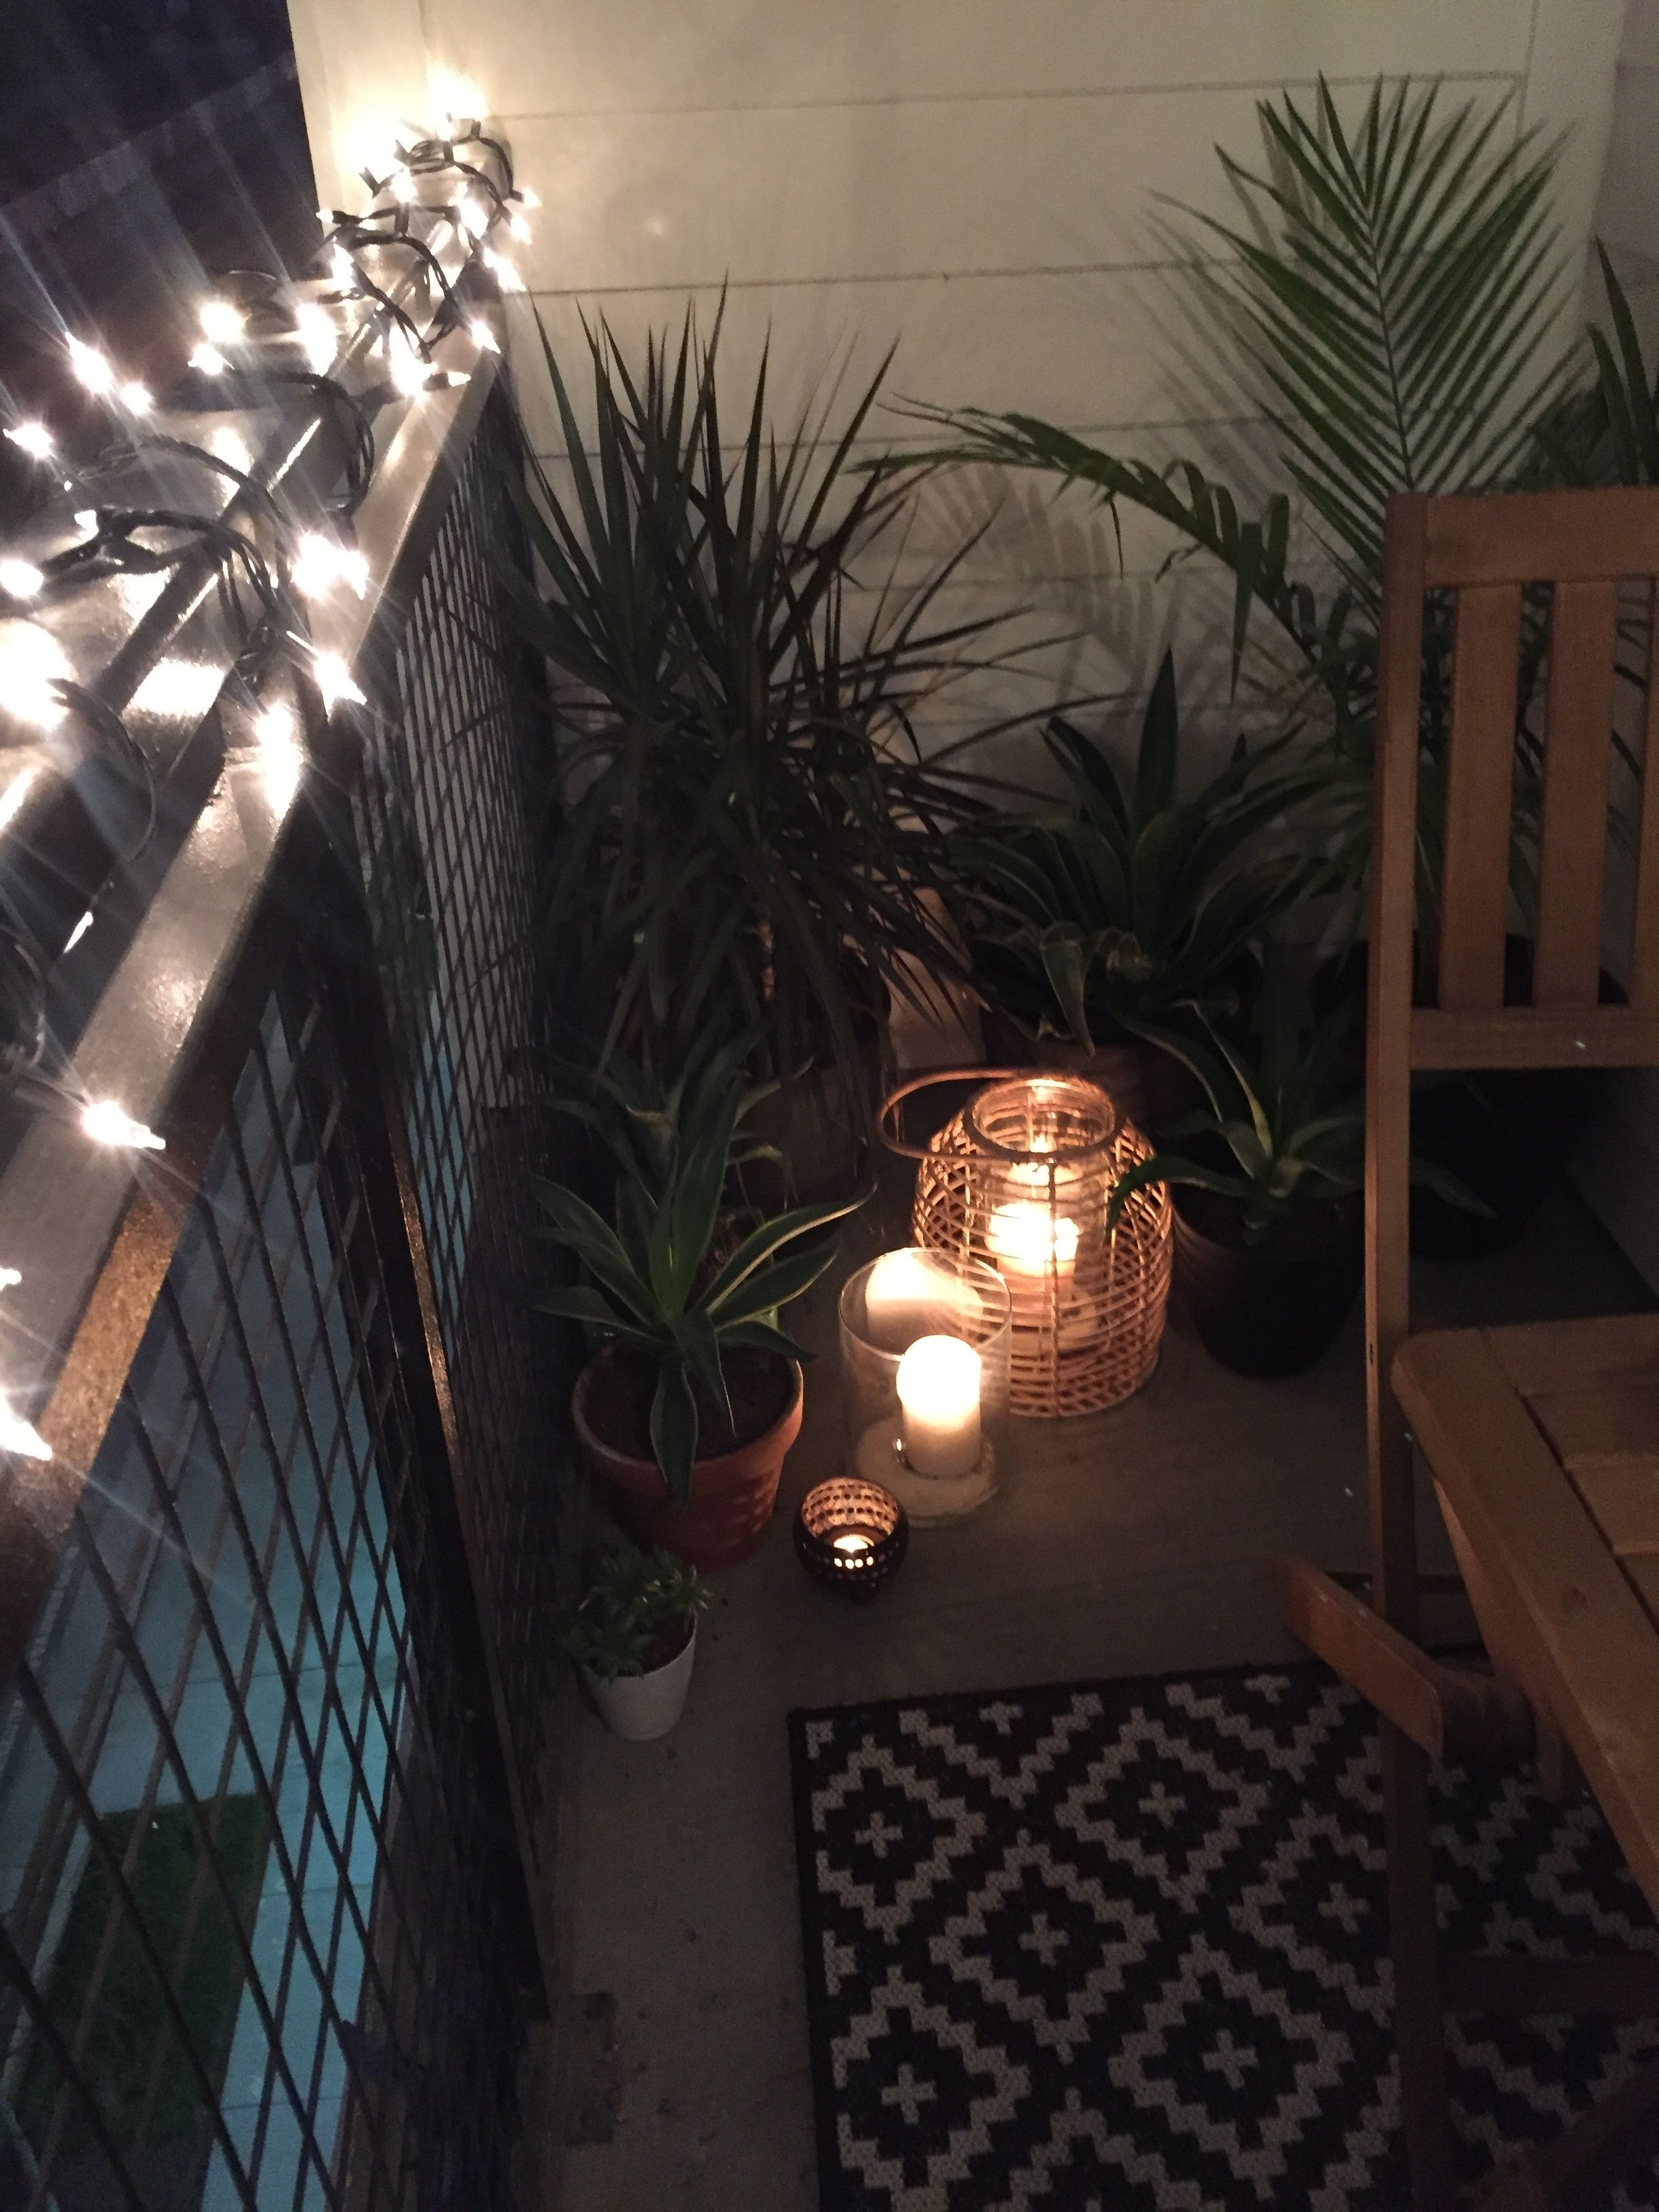 Preferred Outdoor Rope Lighting Ideas Elegant Tropical Plants Candles Lanterns Pertaining To Outdoor Rope Lanterns (View 15 of 20)